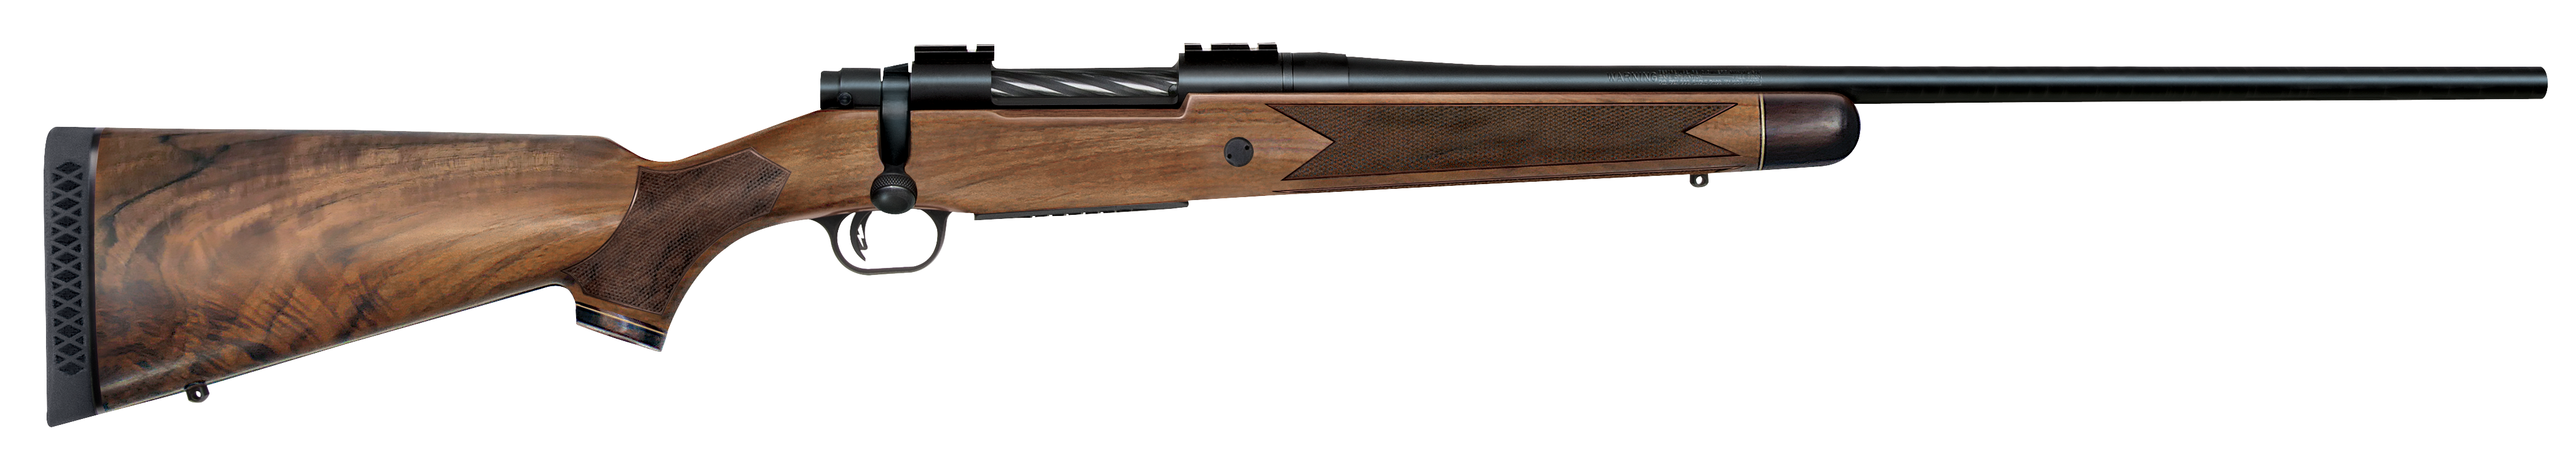 Mossberg Patriot Revere 6.5 Creedmoor 24